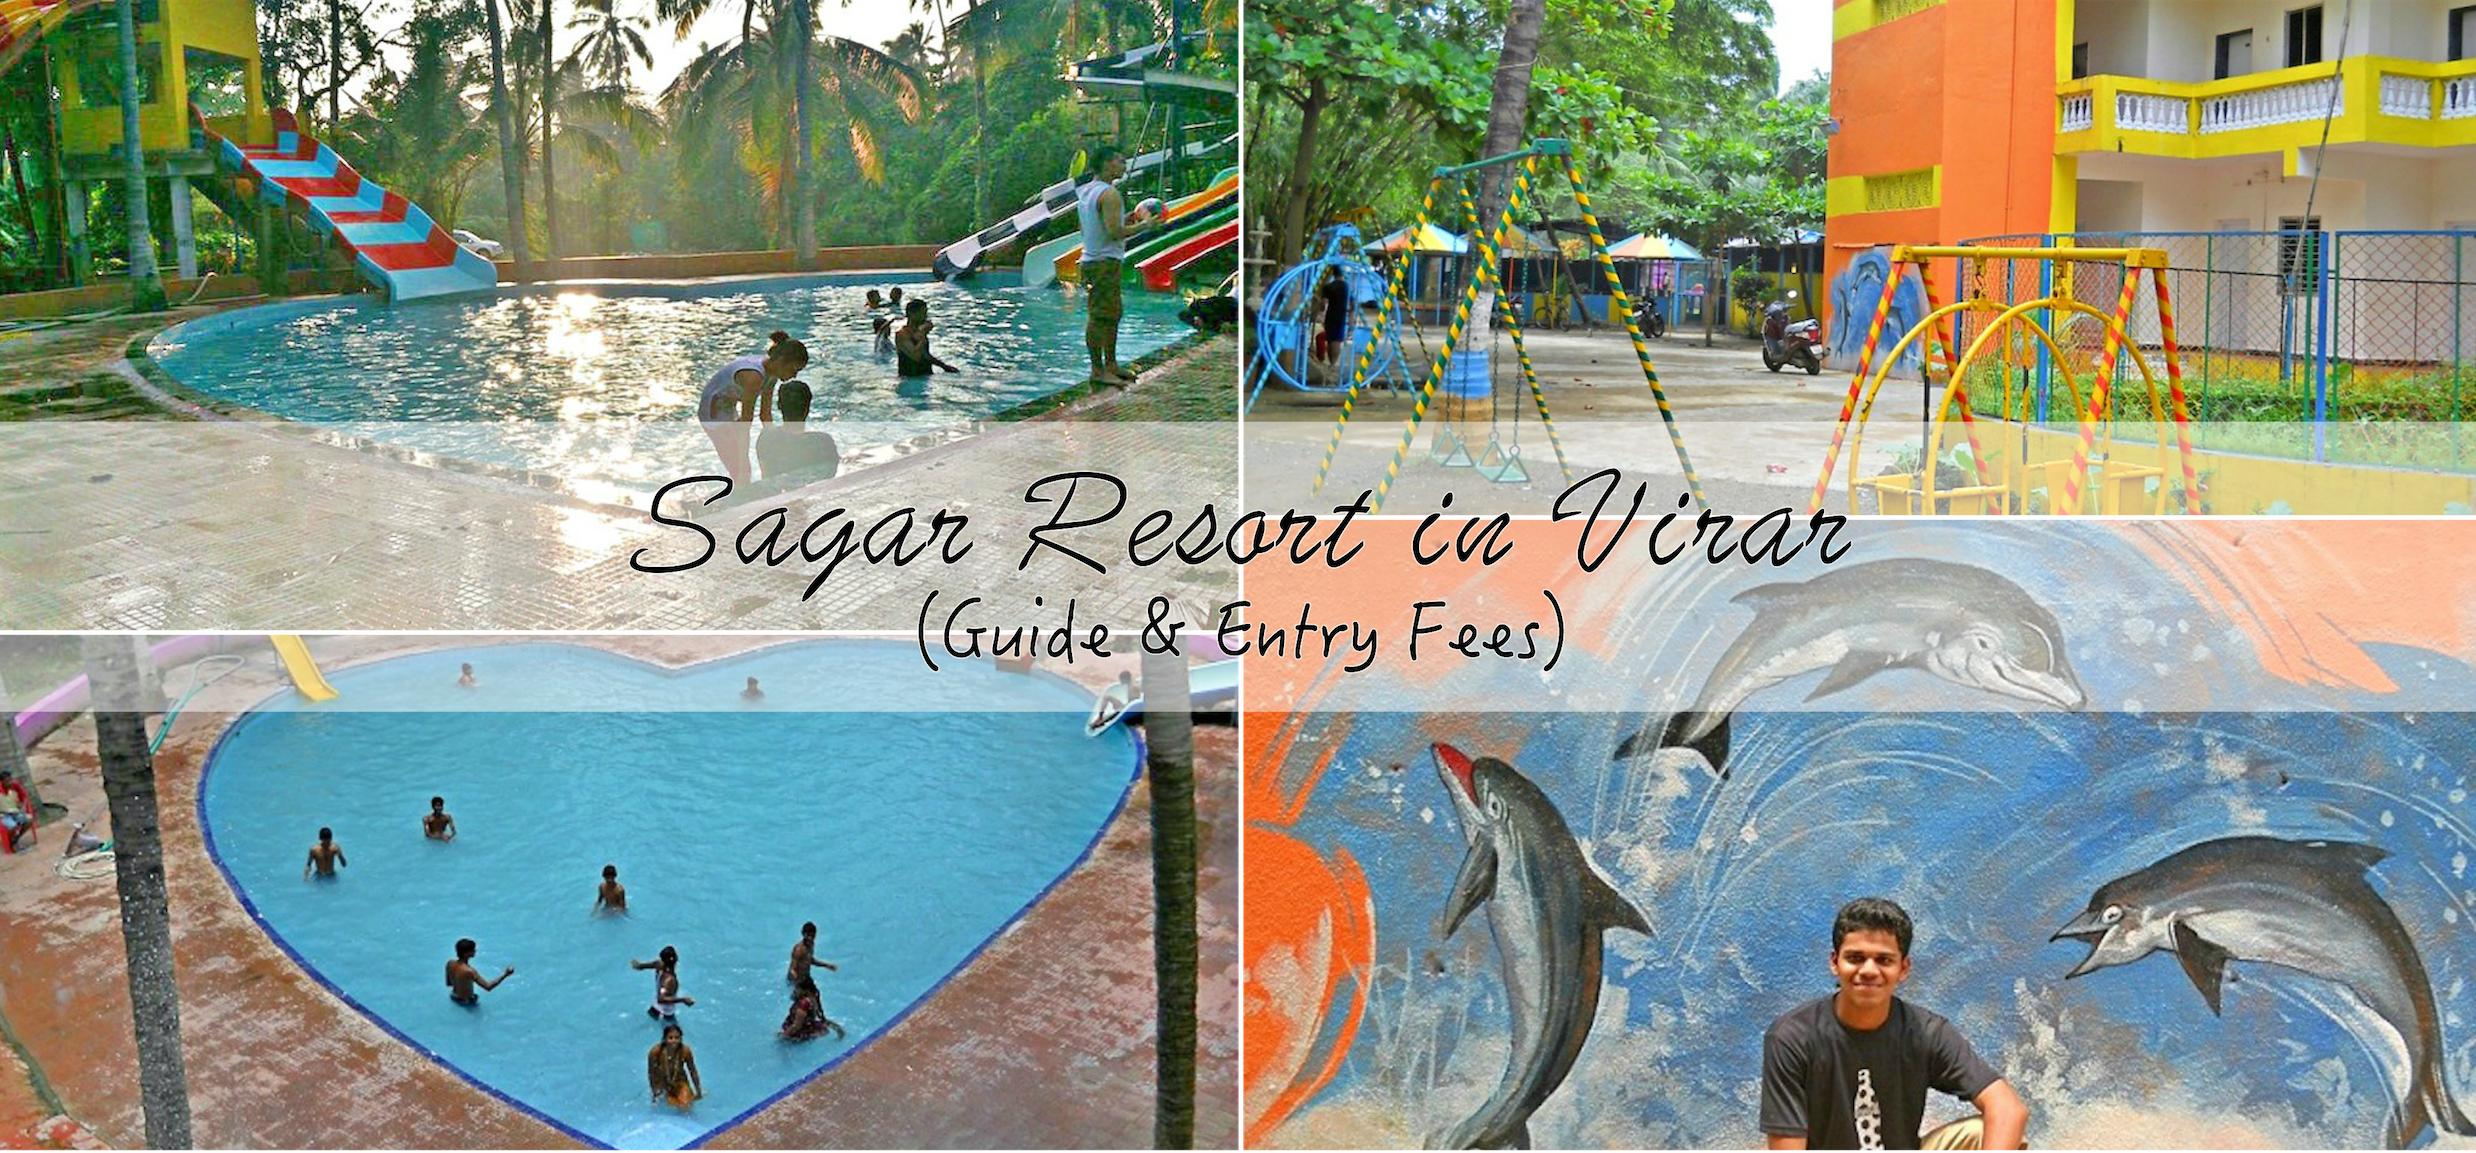 Sagar Resort Virar.jpg